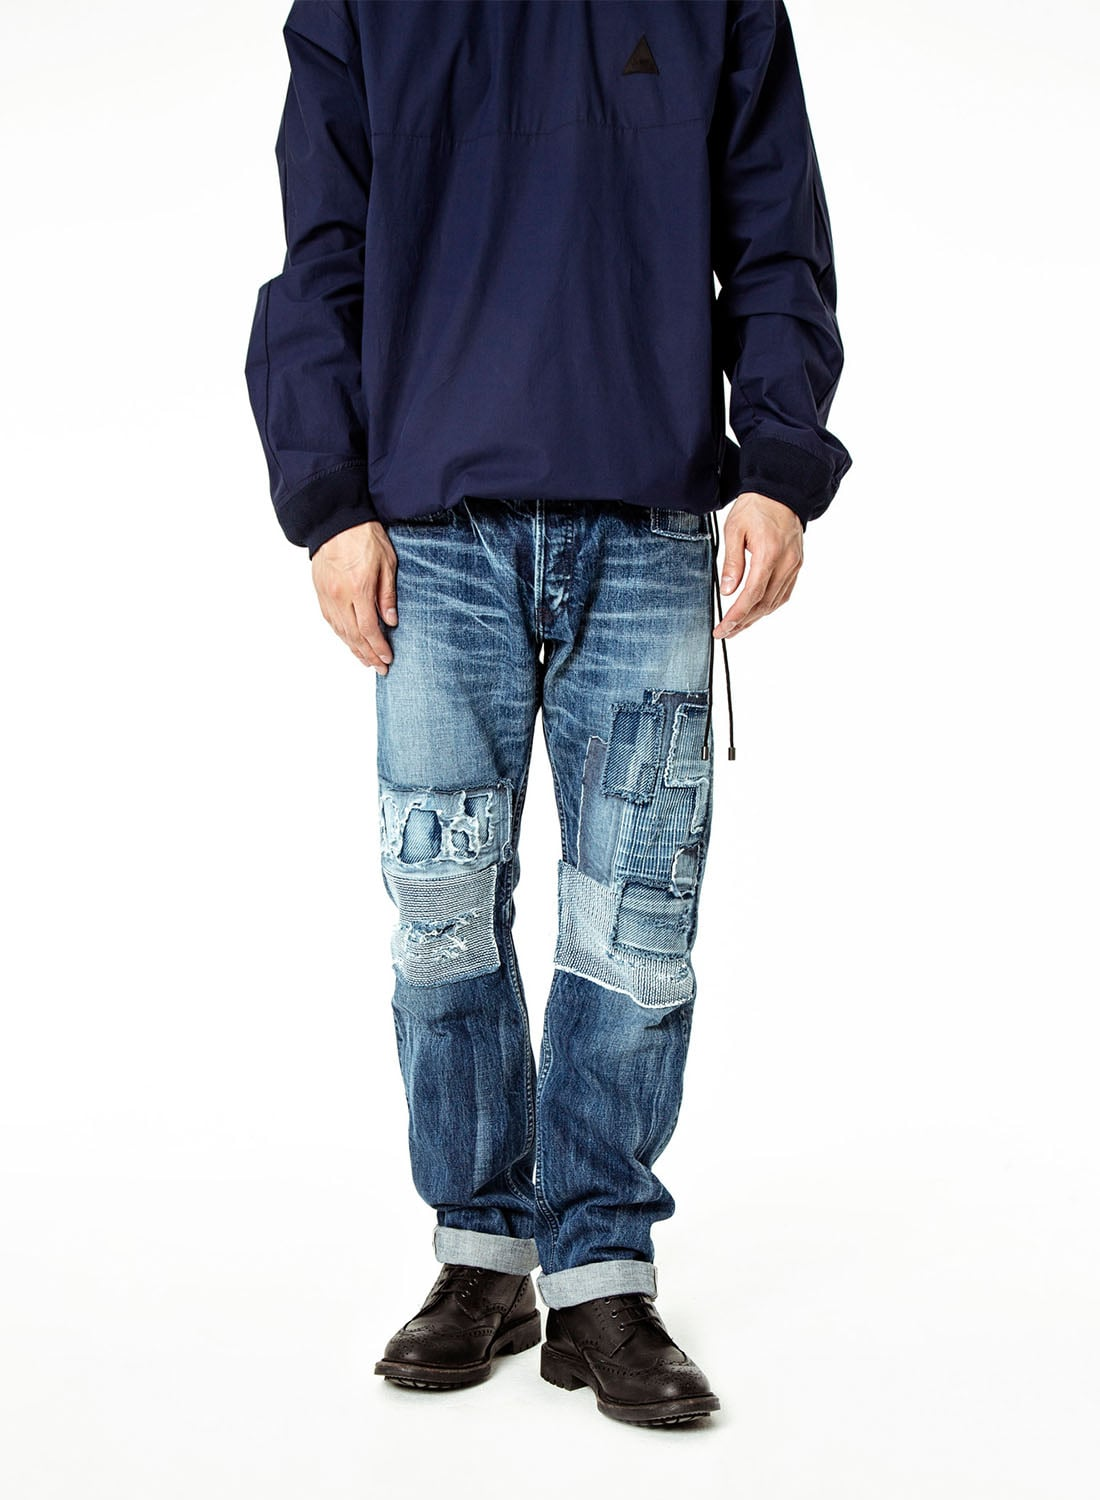 【MADE IN JAPAN DENIM】 GRADE MIJSANJU